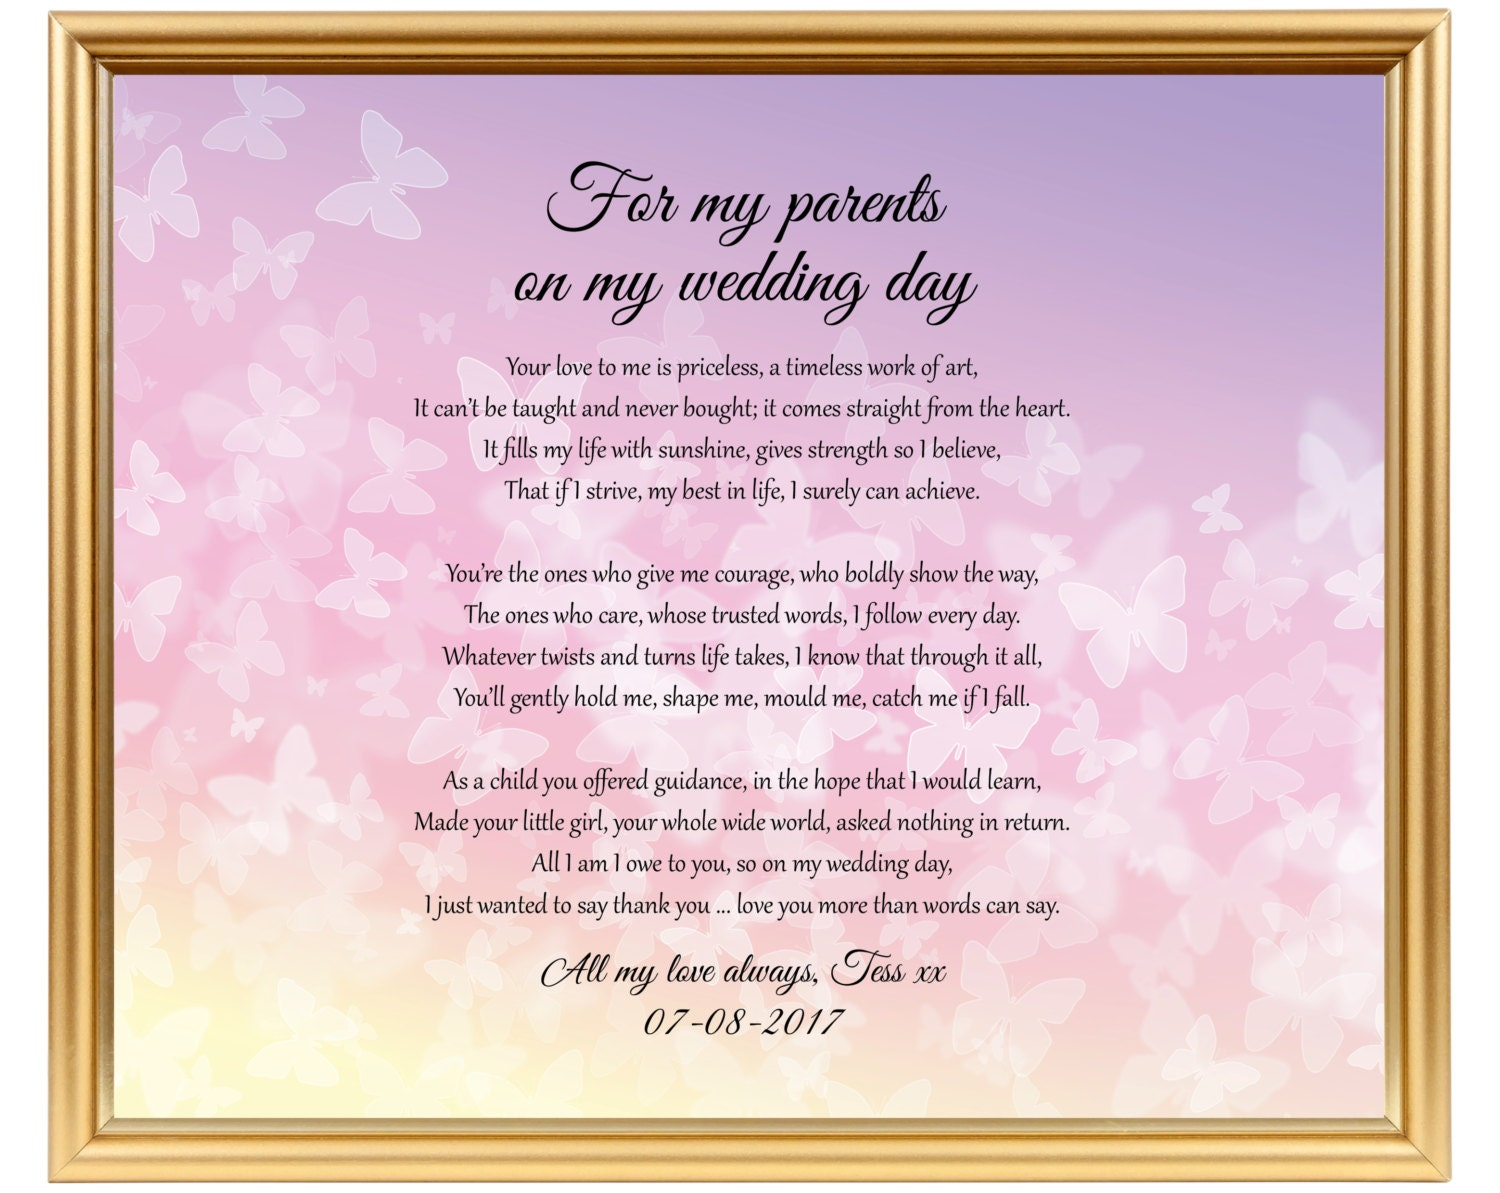 Wedding gift poem From Bride to parents Poem gift to Mom | Etsy